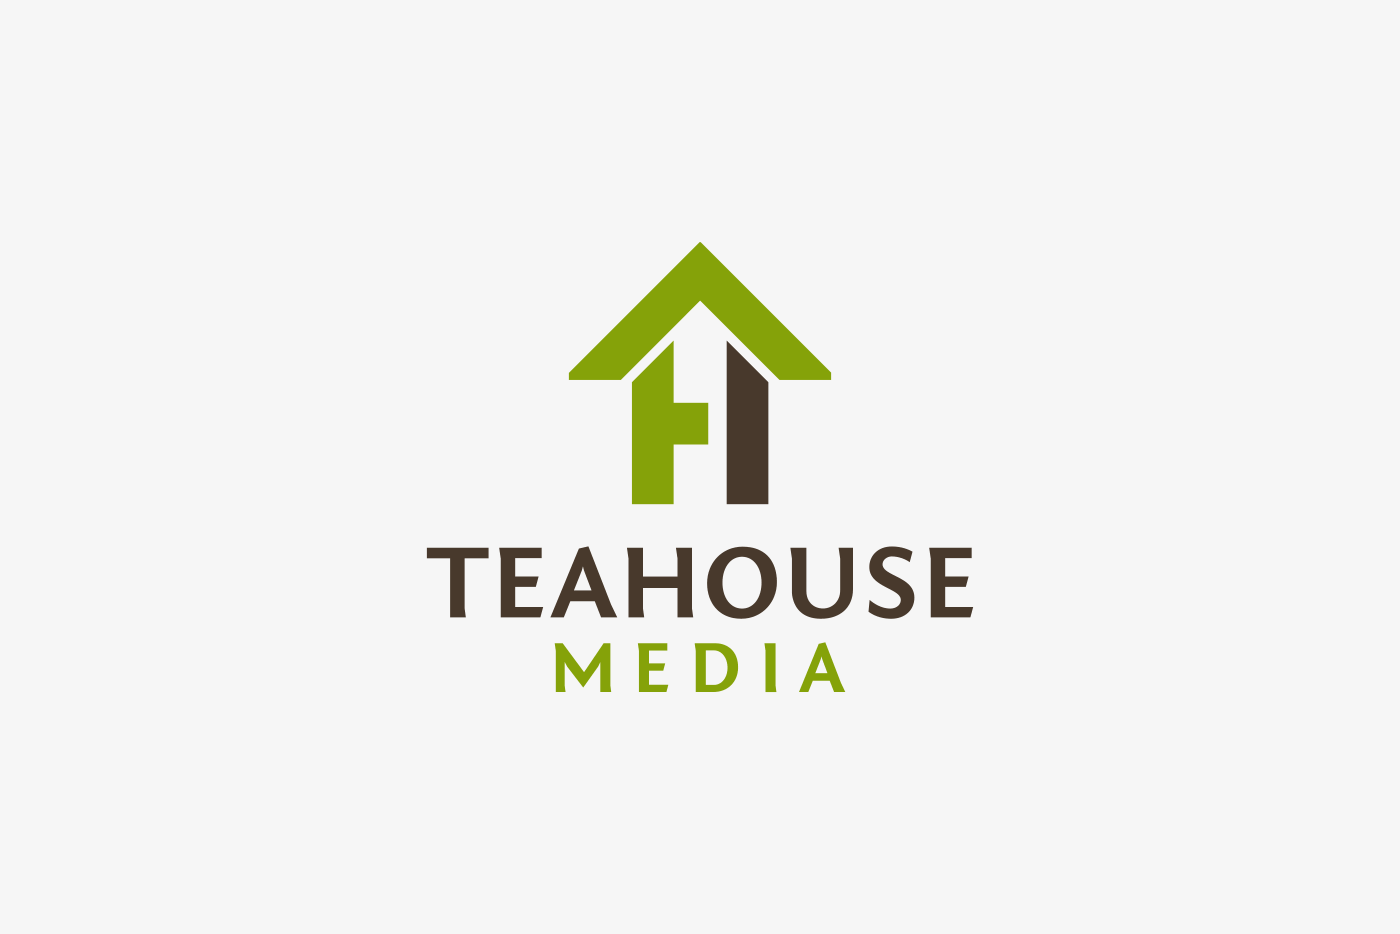 Teahouse Media Logo